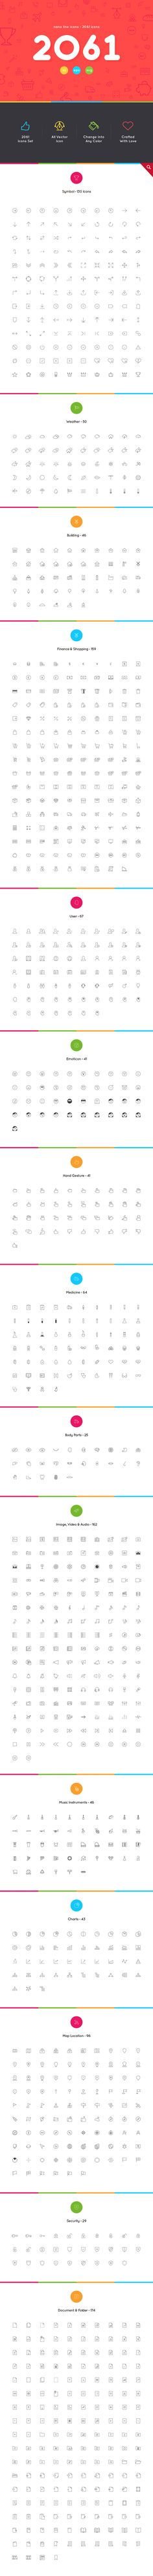 Download here: https://creativemarket.com/vuuuds/261615-2061-Nanoline-icons